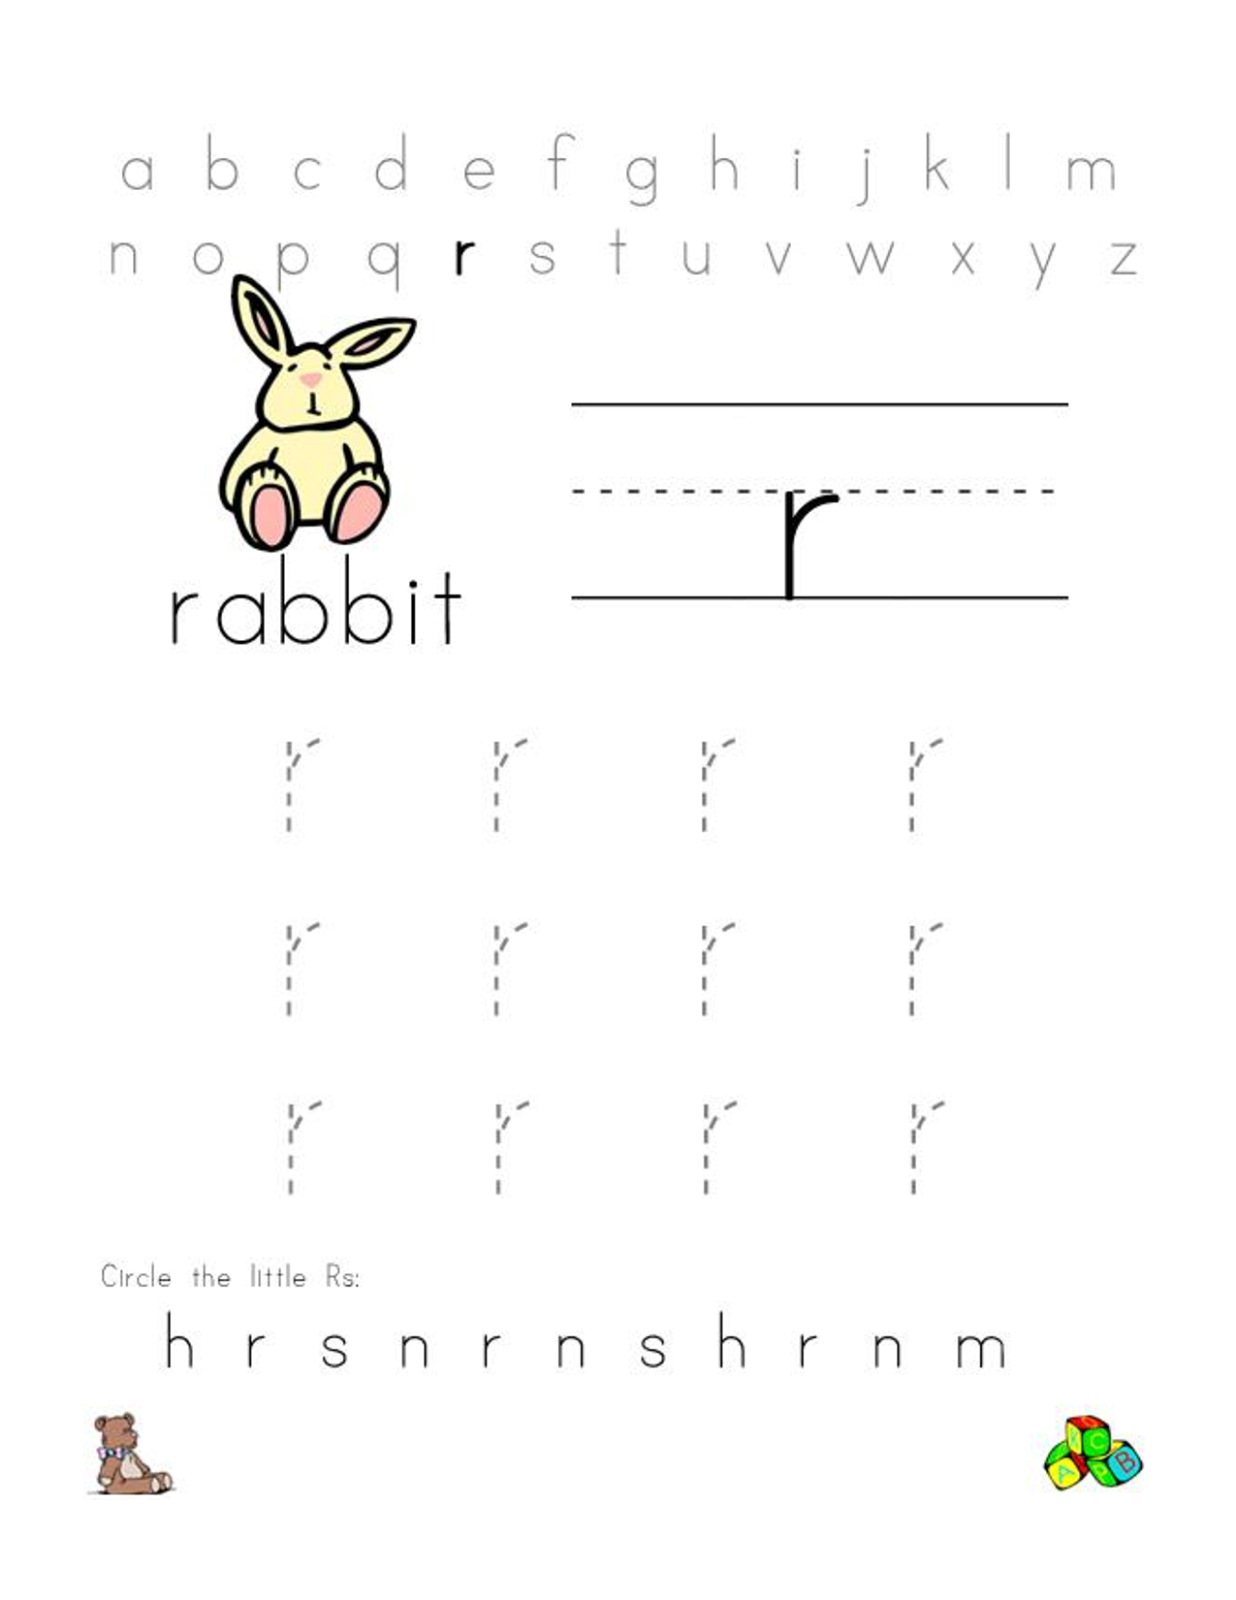 free-alphabet-worksheets-rabbit